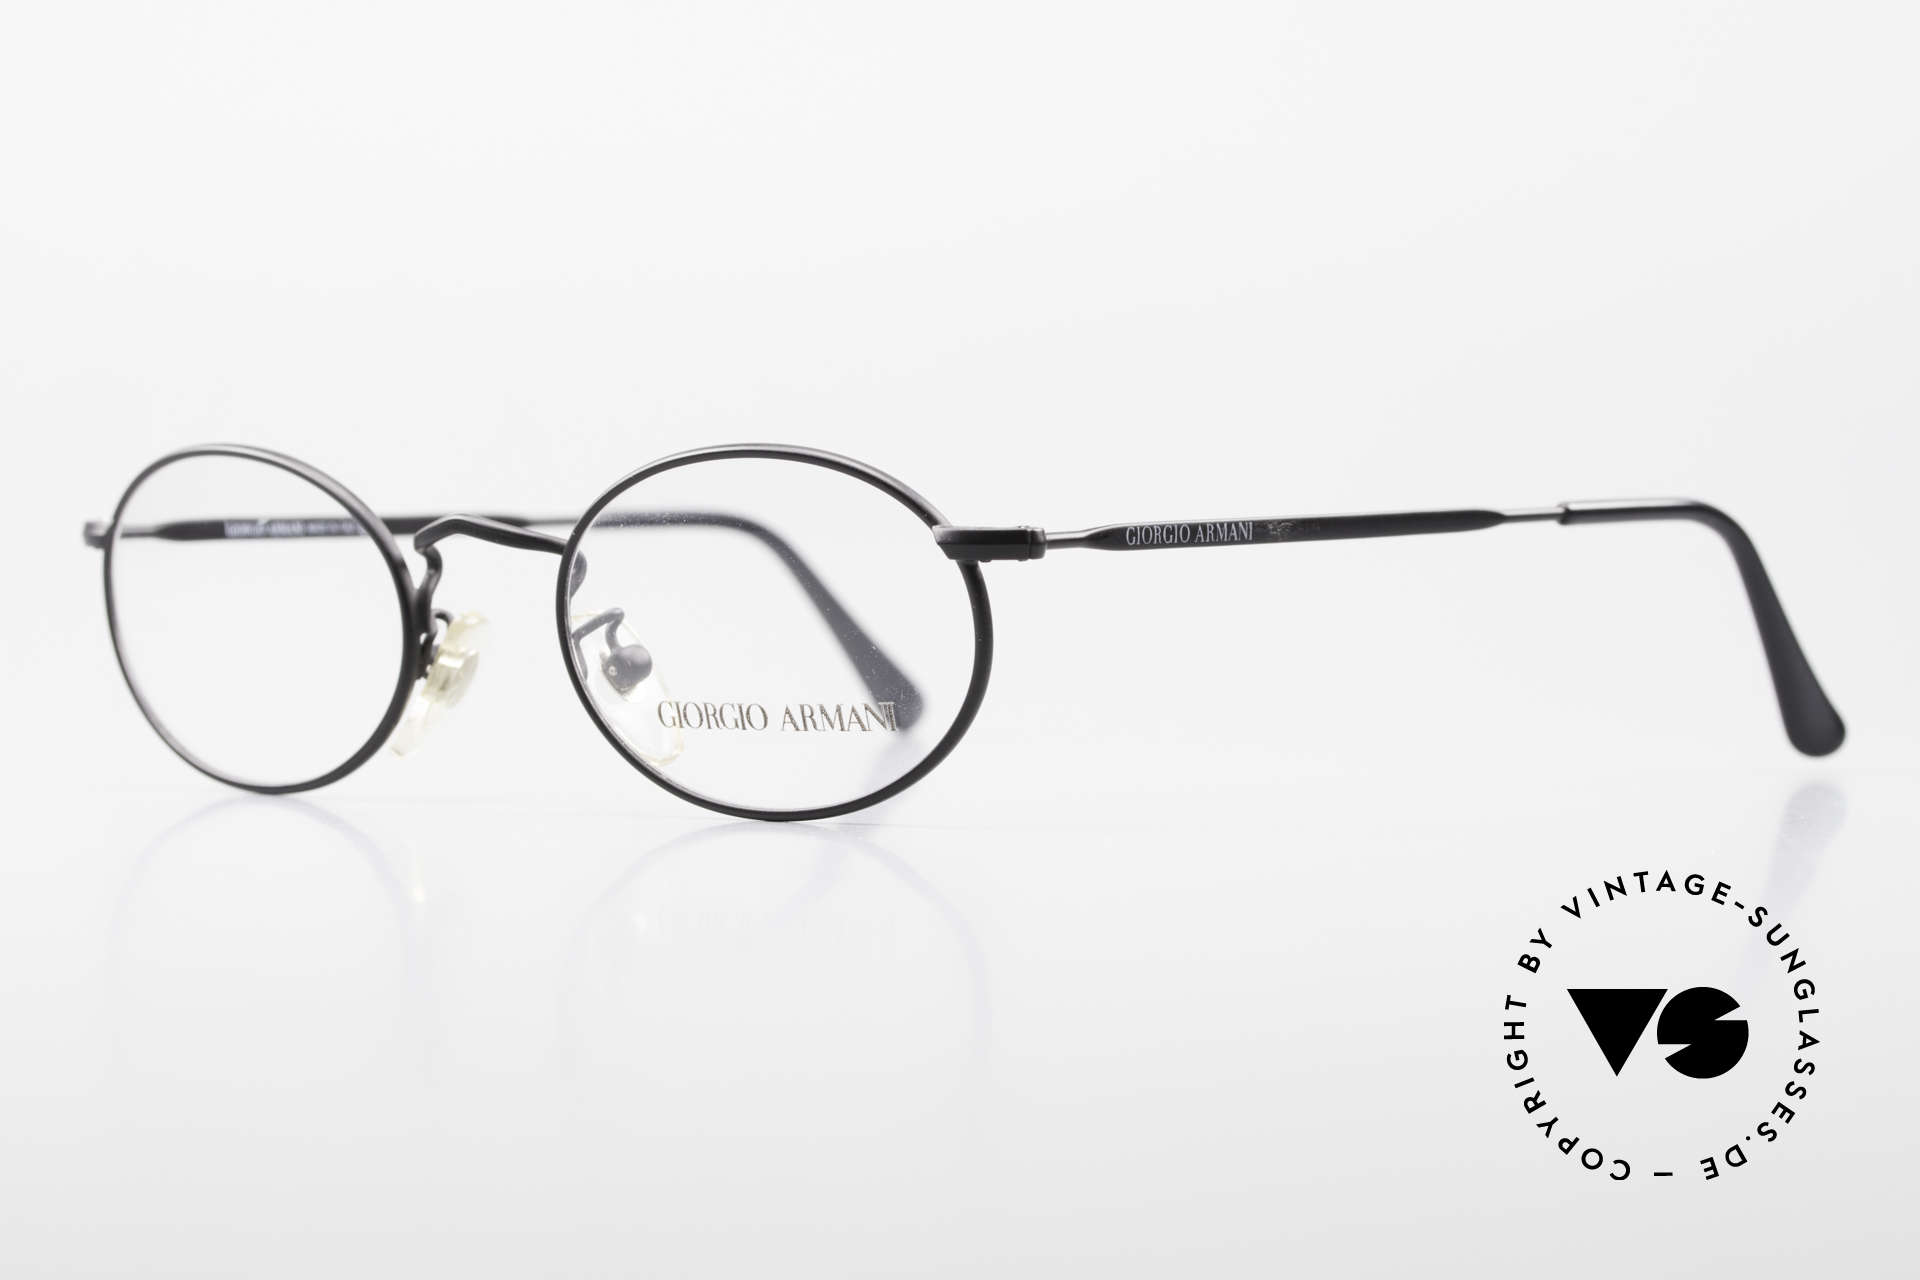 Giorgio Armani 131 Vintage Eyeglasses Oval Frame, a timeless 1980's model in tangible premium quality, Made for Men and Women